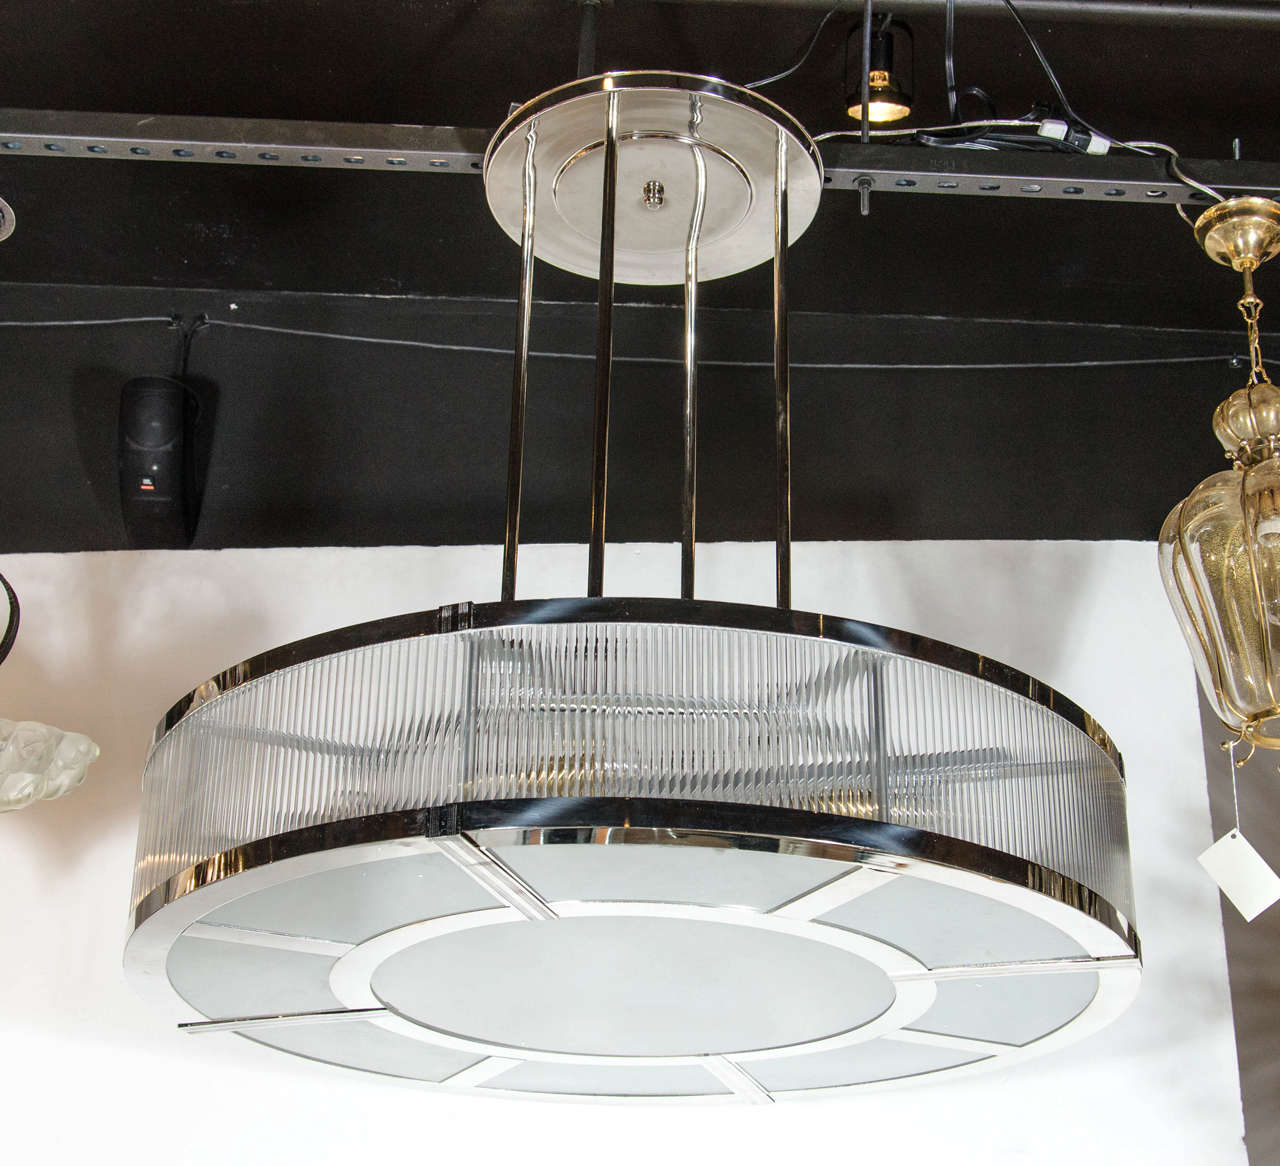 Streamline art deco style circular chandelier in polished nickel and this large scale machine age french art deco style chandelier in the manner of petitot arubaitofo Gallery